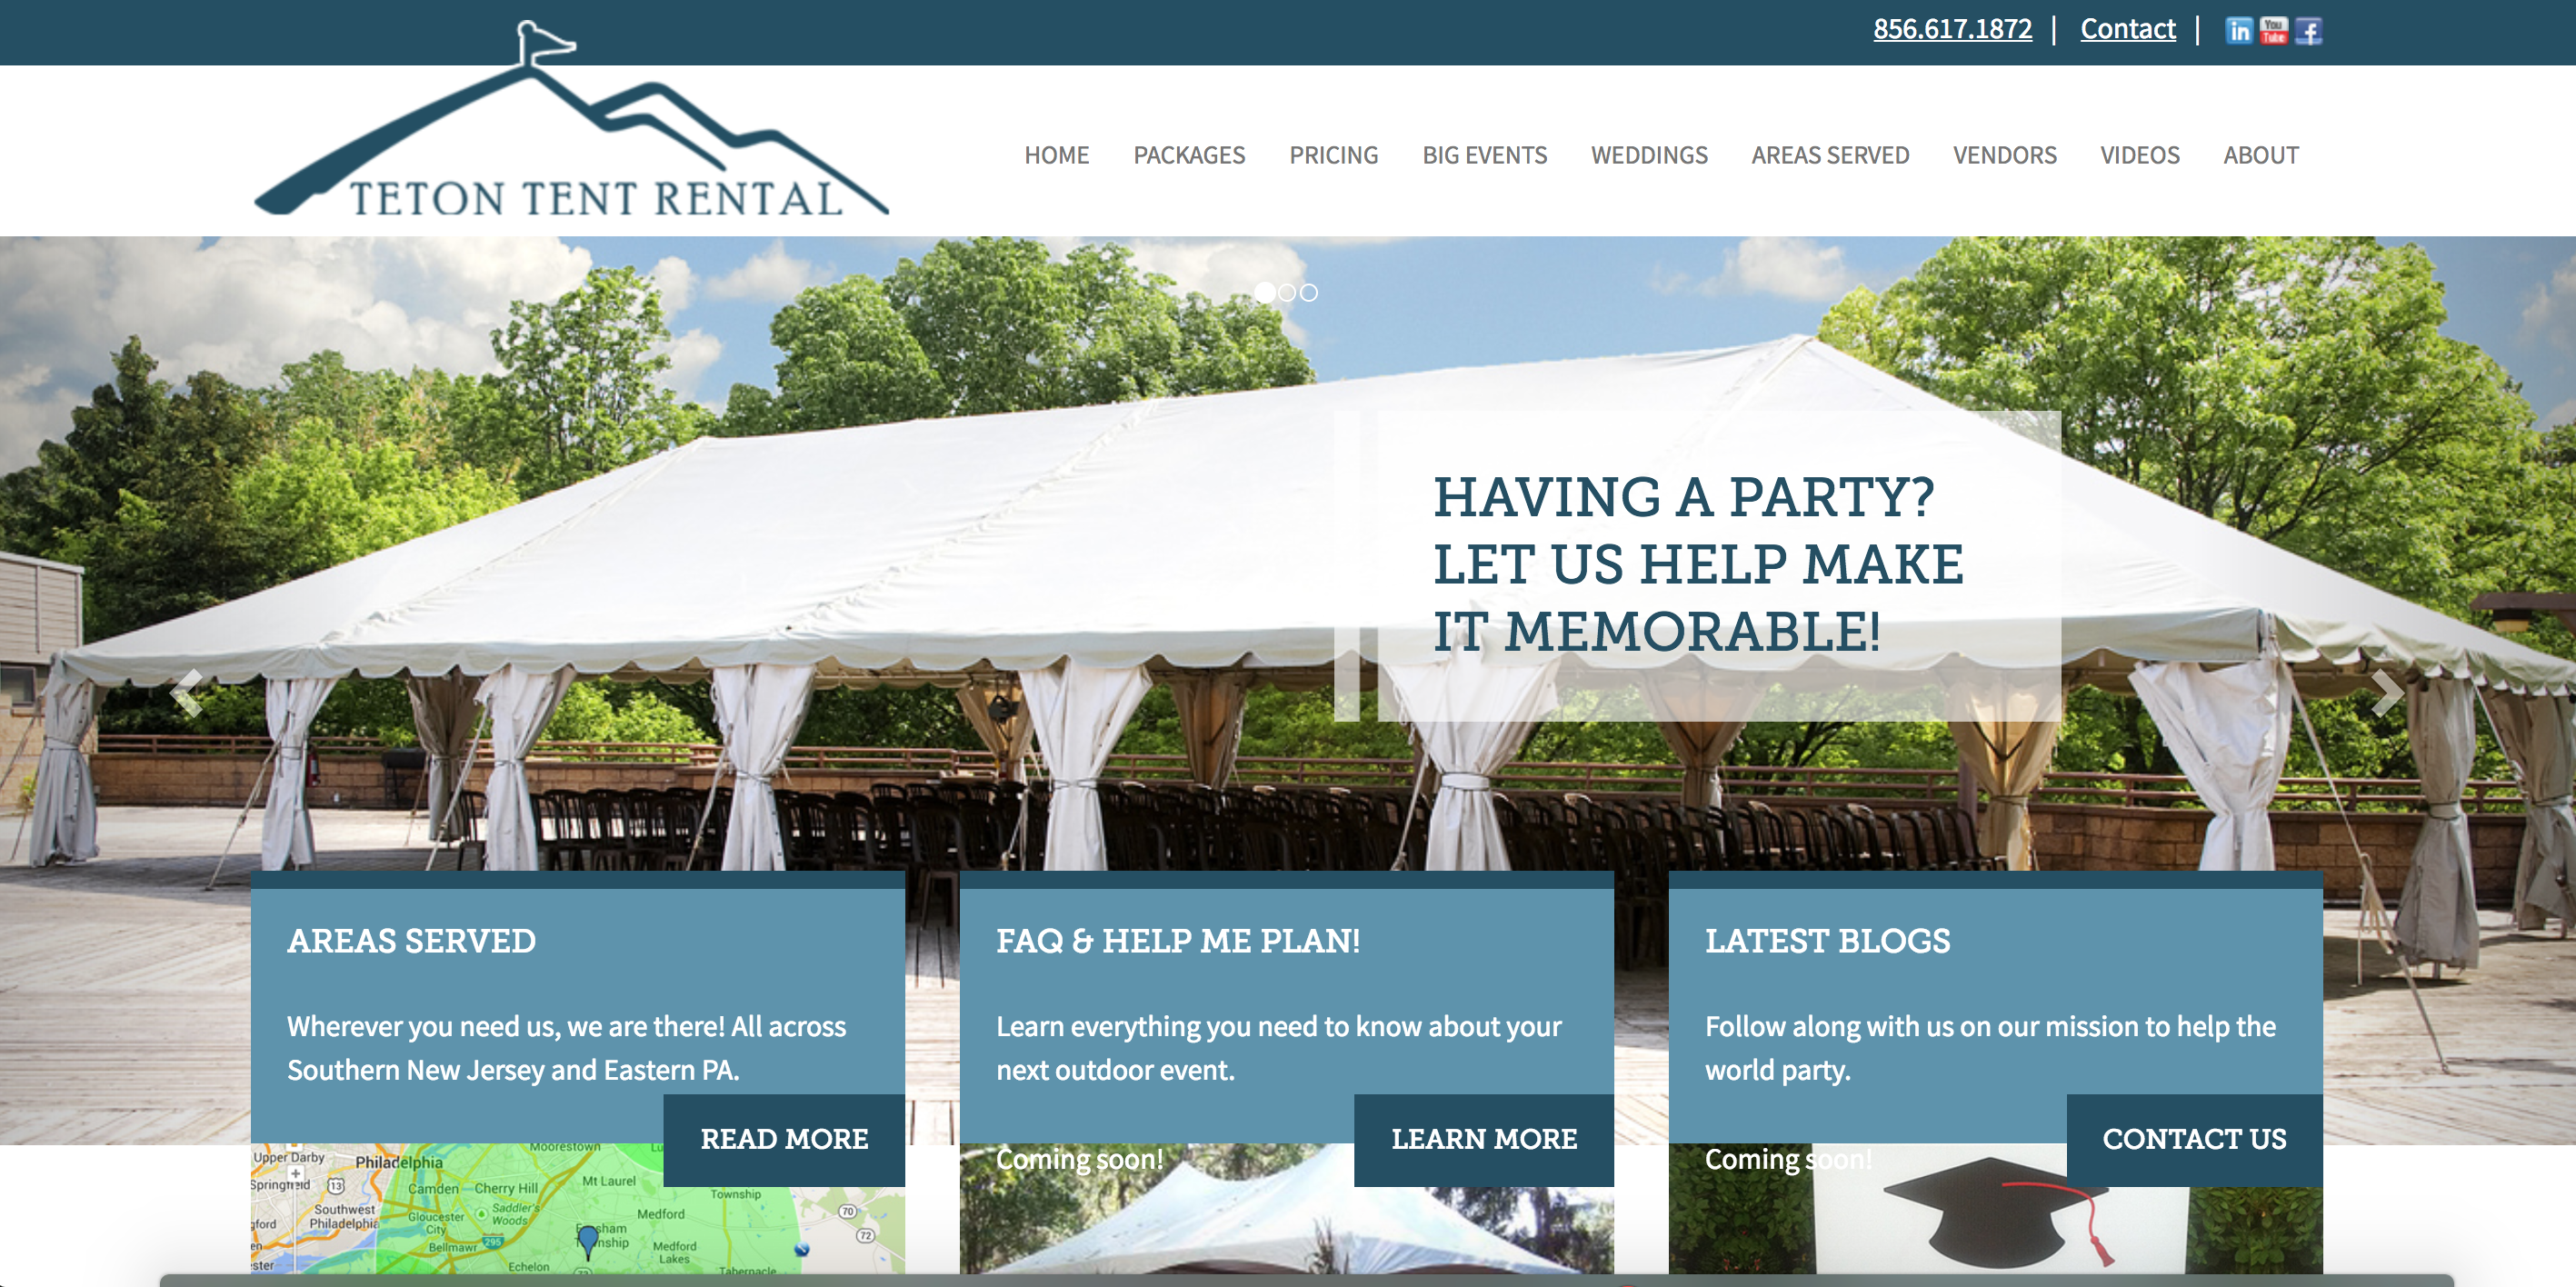 Teton tent rental home page